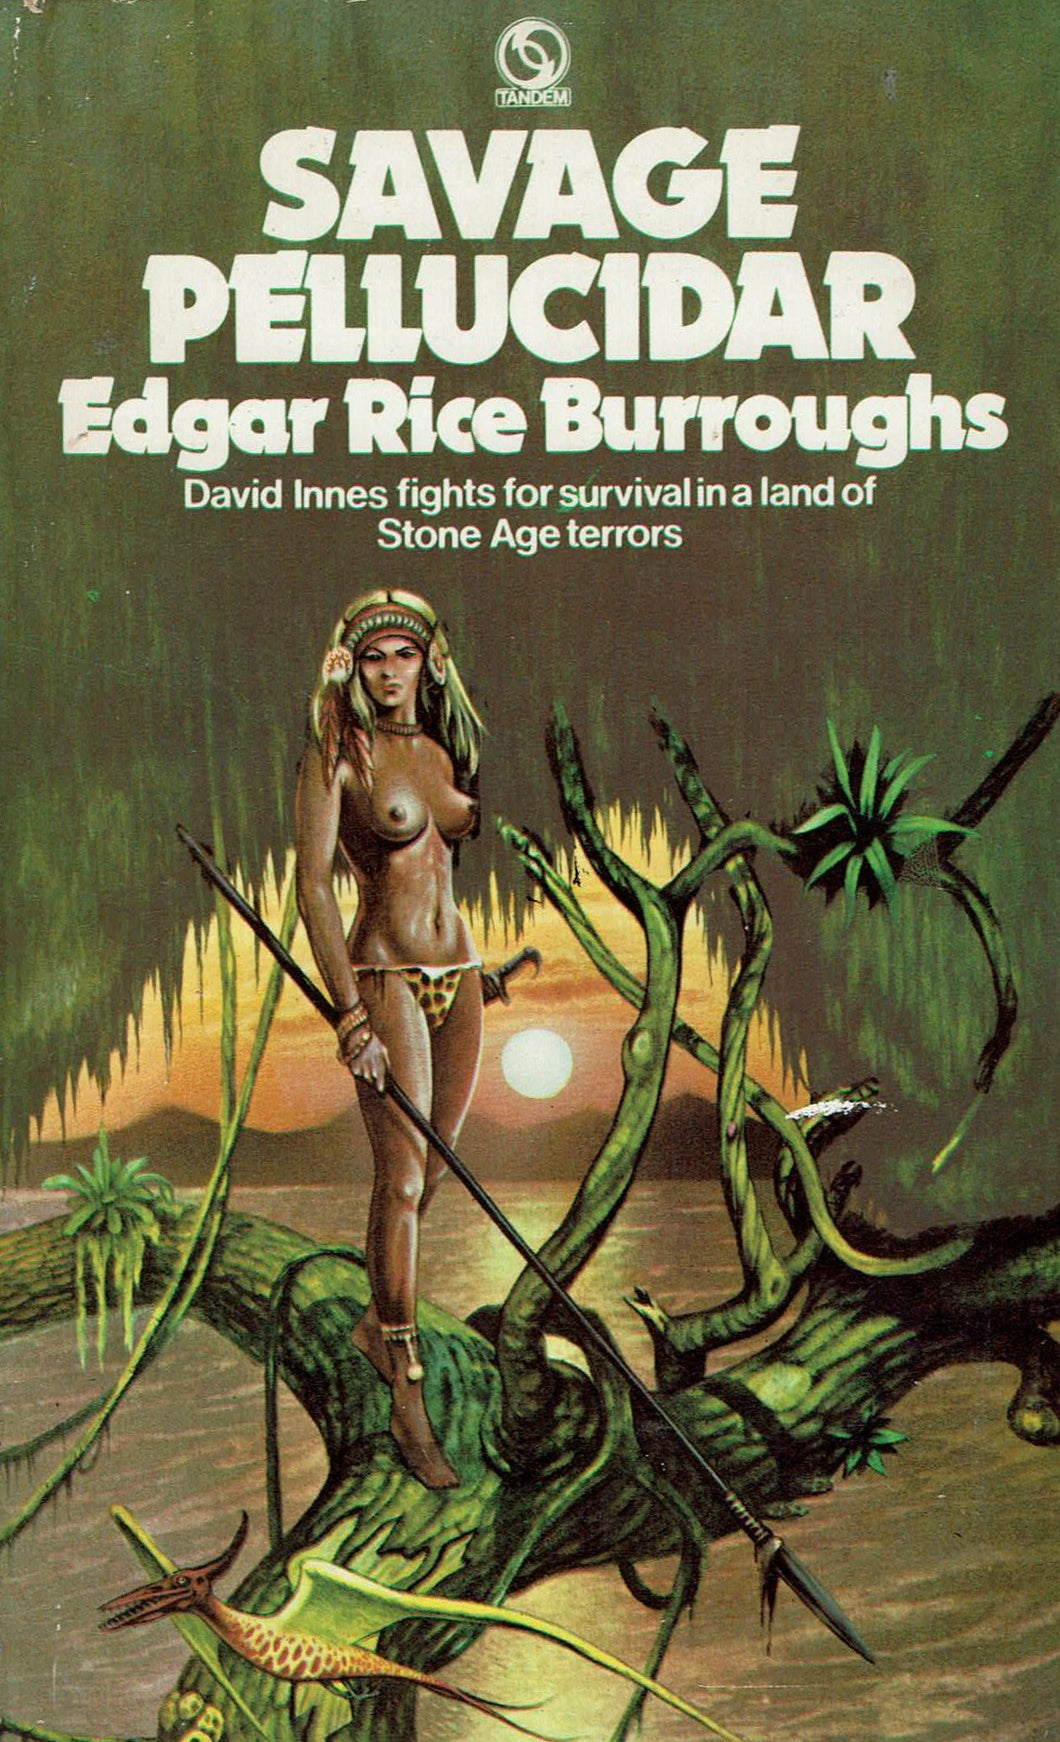 Savage Pellucidar by Edgar Rice Burroughs